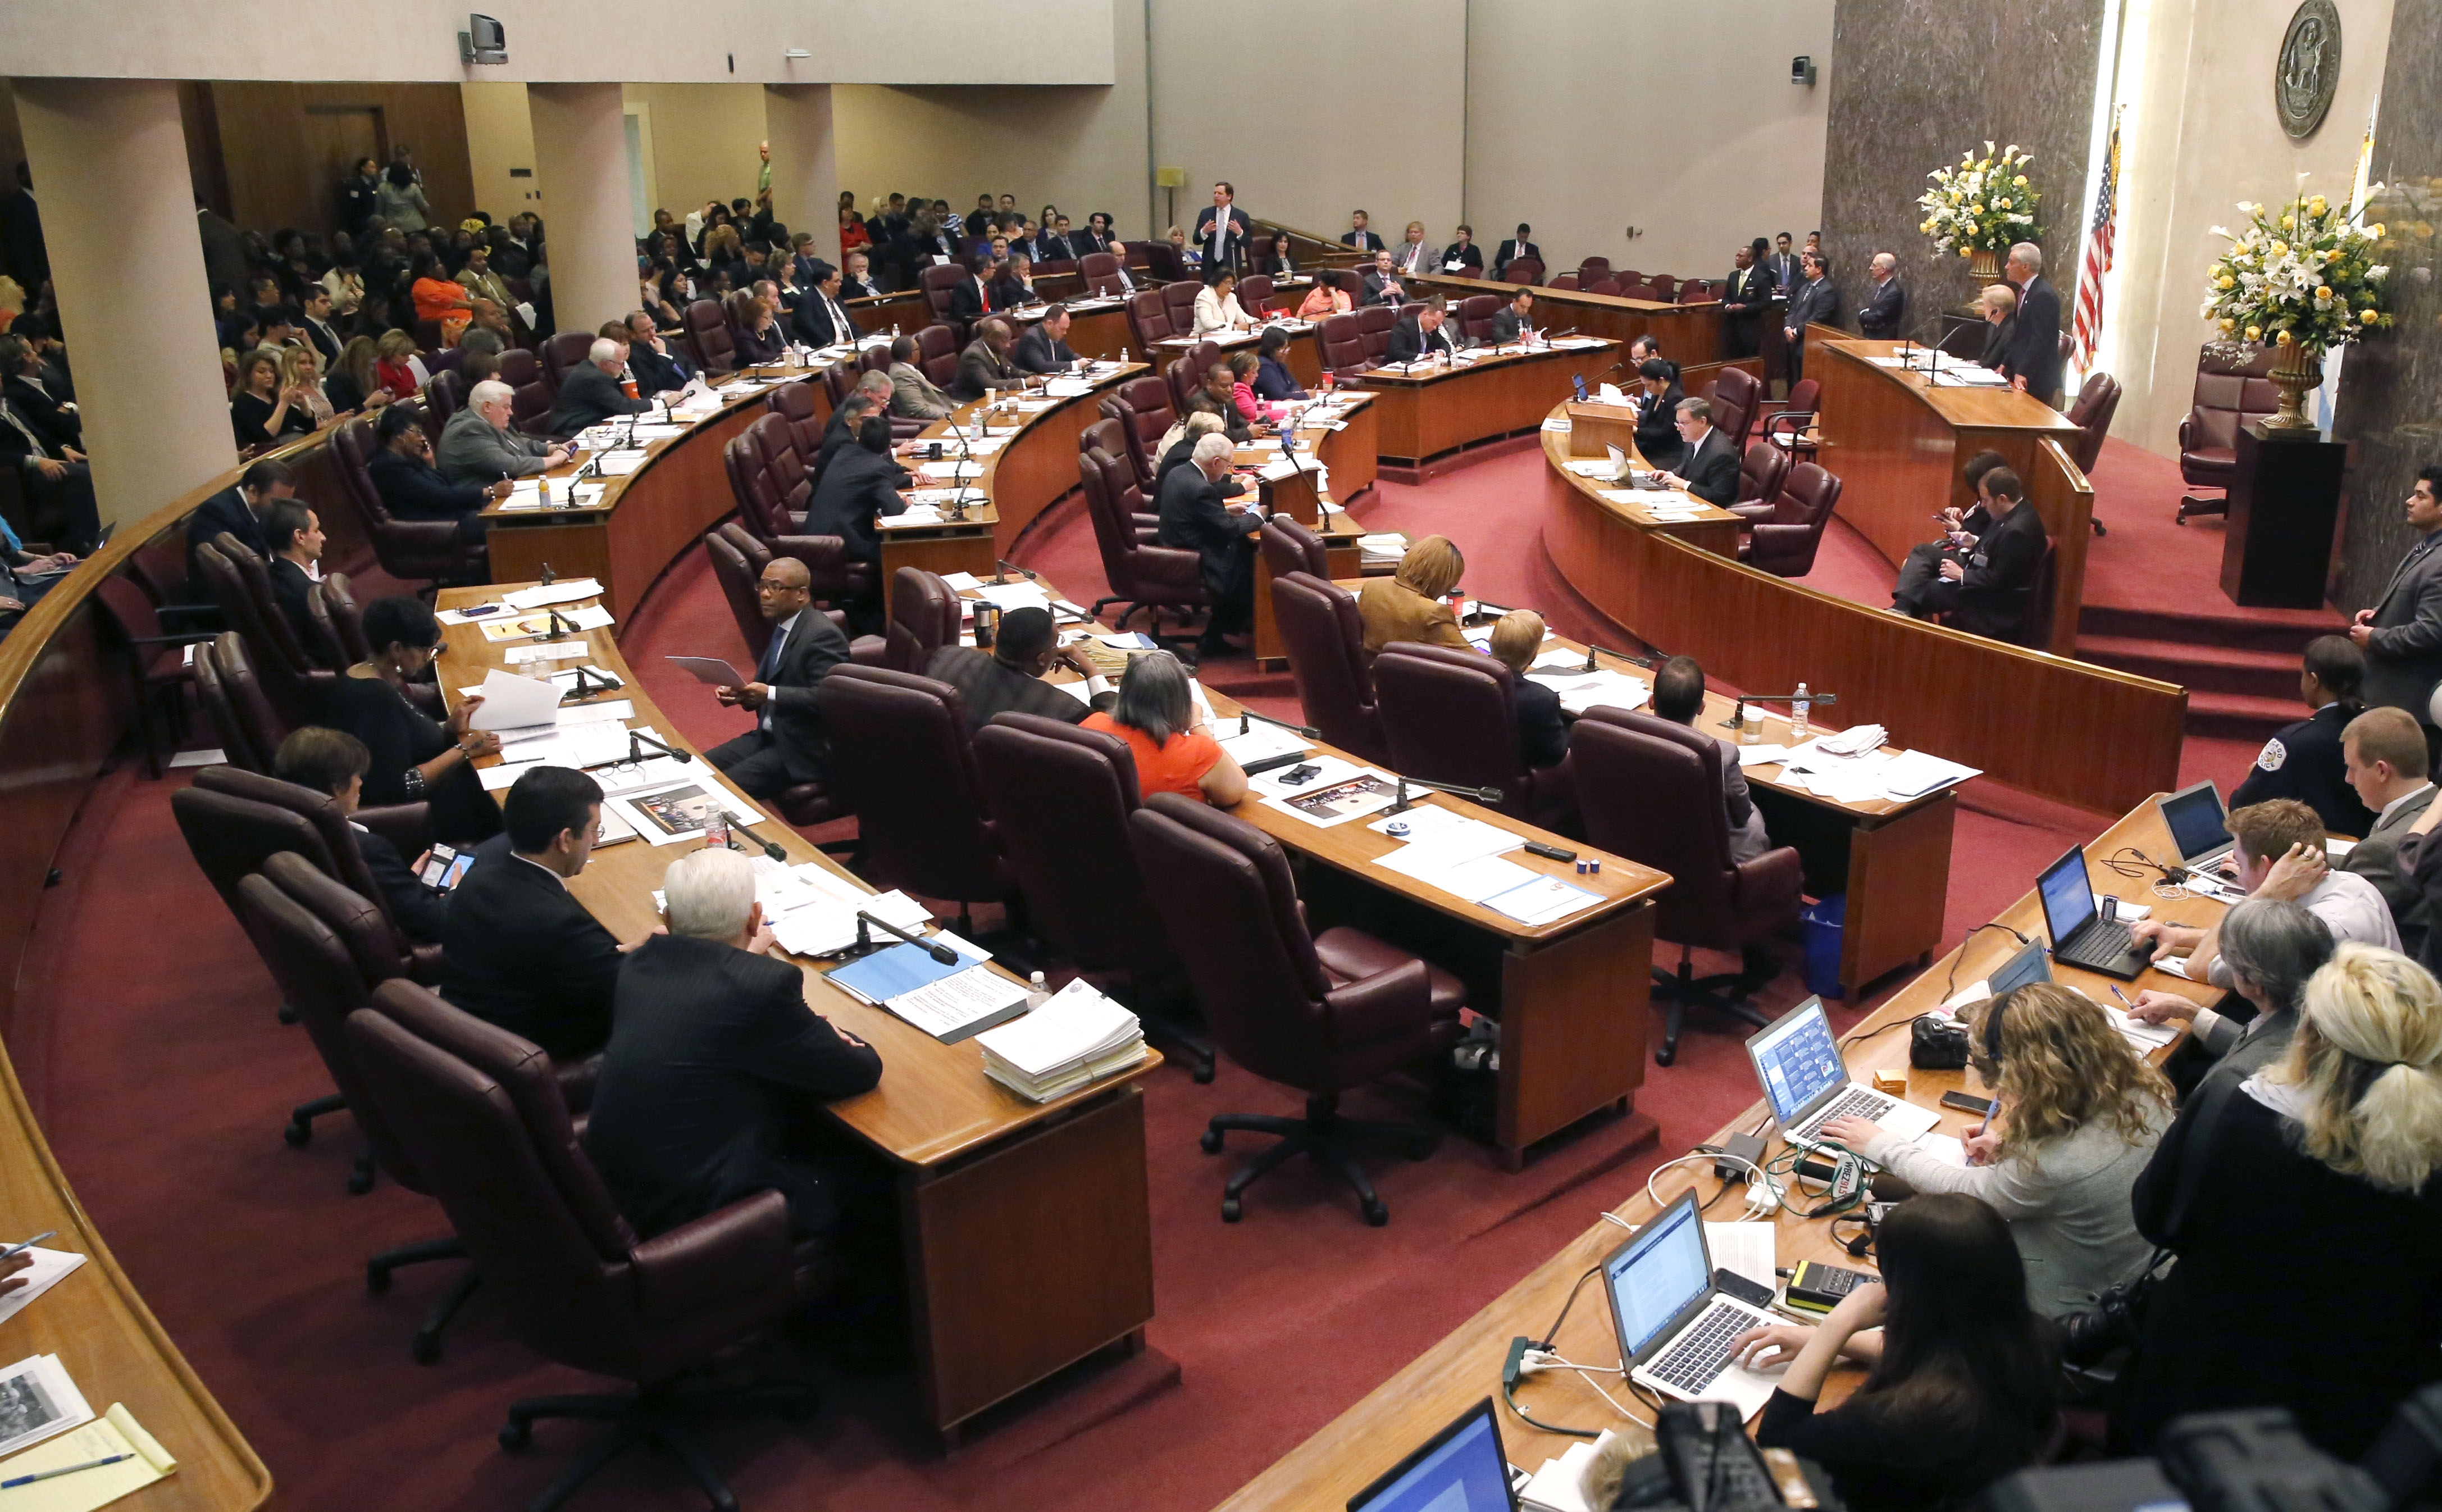 """The Chicago City Council votes on a $5.5 million fund to compensate victims of police torture, Wednesday, May 6, 2015, in Chicago. The """"reparations"""" package approved Wednesday, would pay up to $100,000 each to dozens of men who claimed they were tortured by the detective crew of notorious former police commander Jon Burge. Some victims spent decades in prison after confessing to crimes they did not commit. (AP Photo/Charles Rex Arbogast)"""